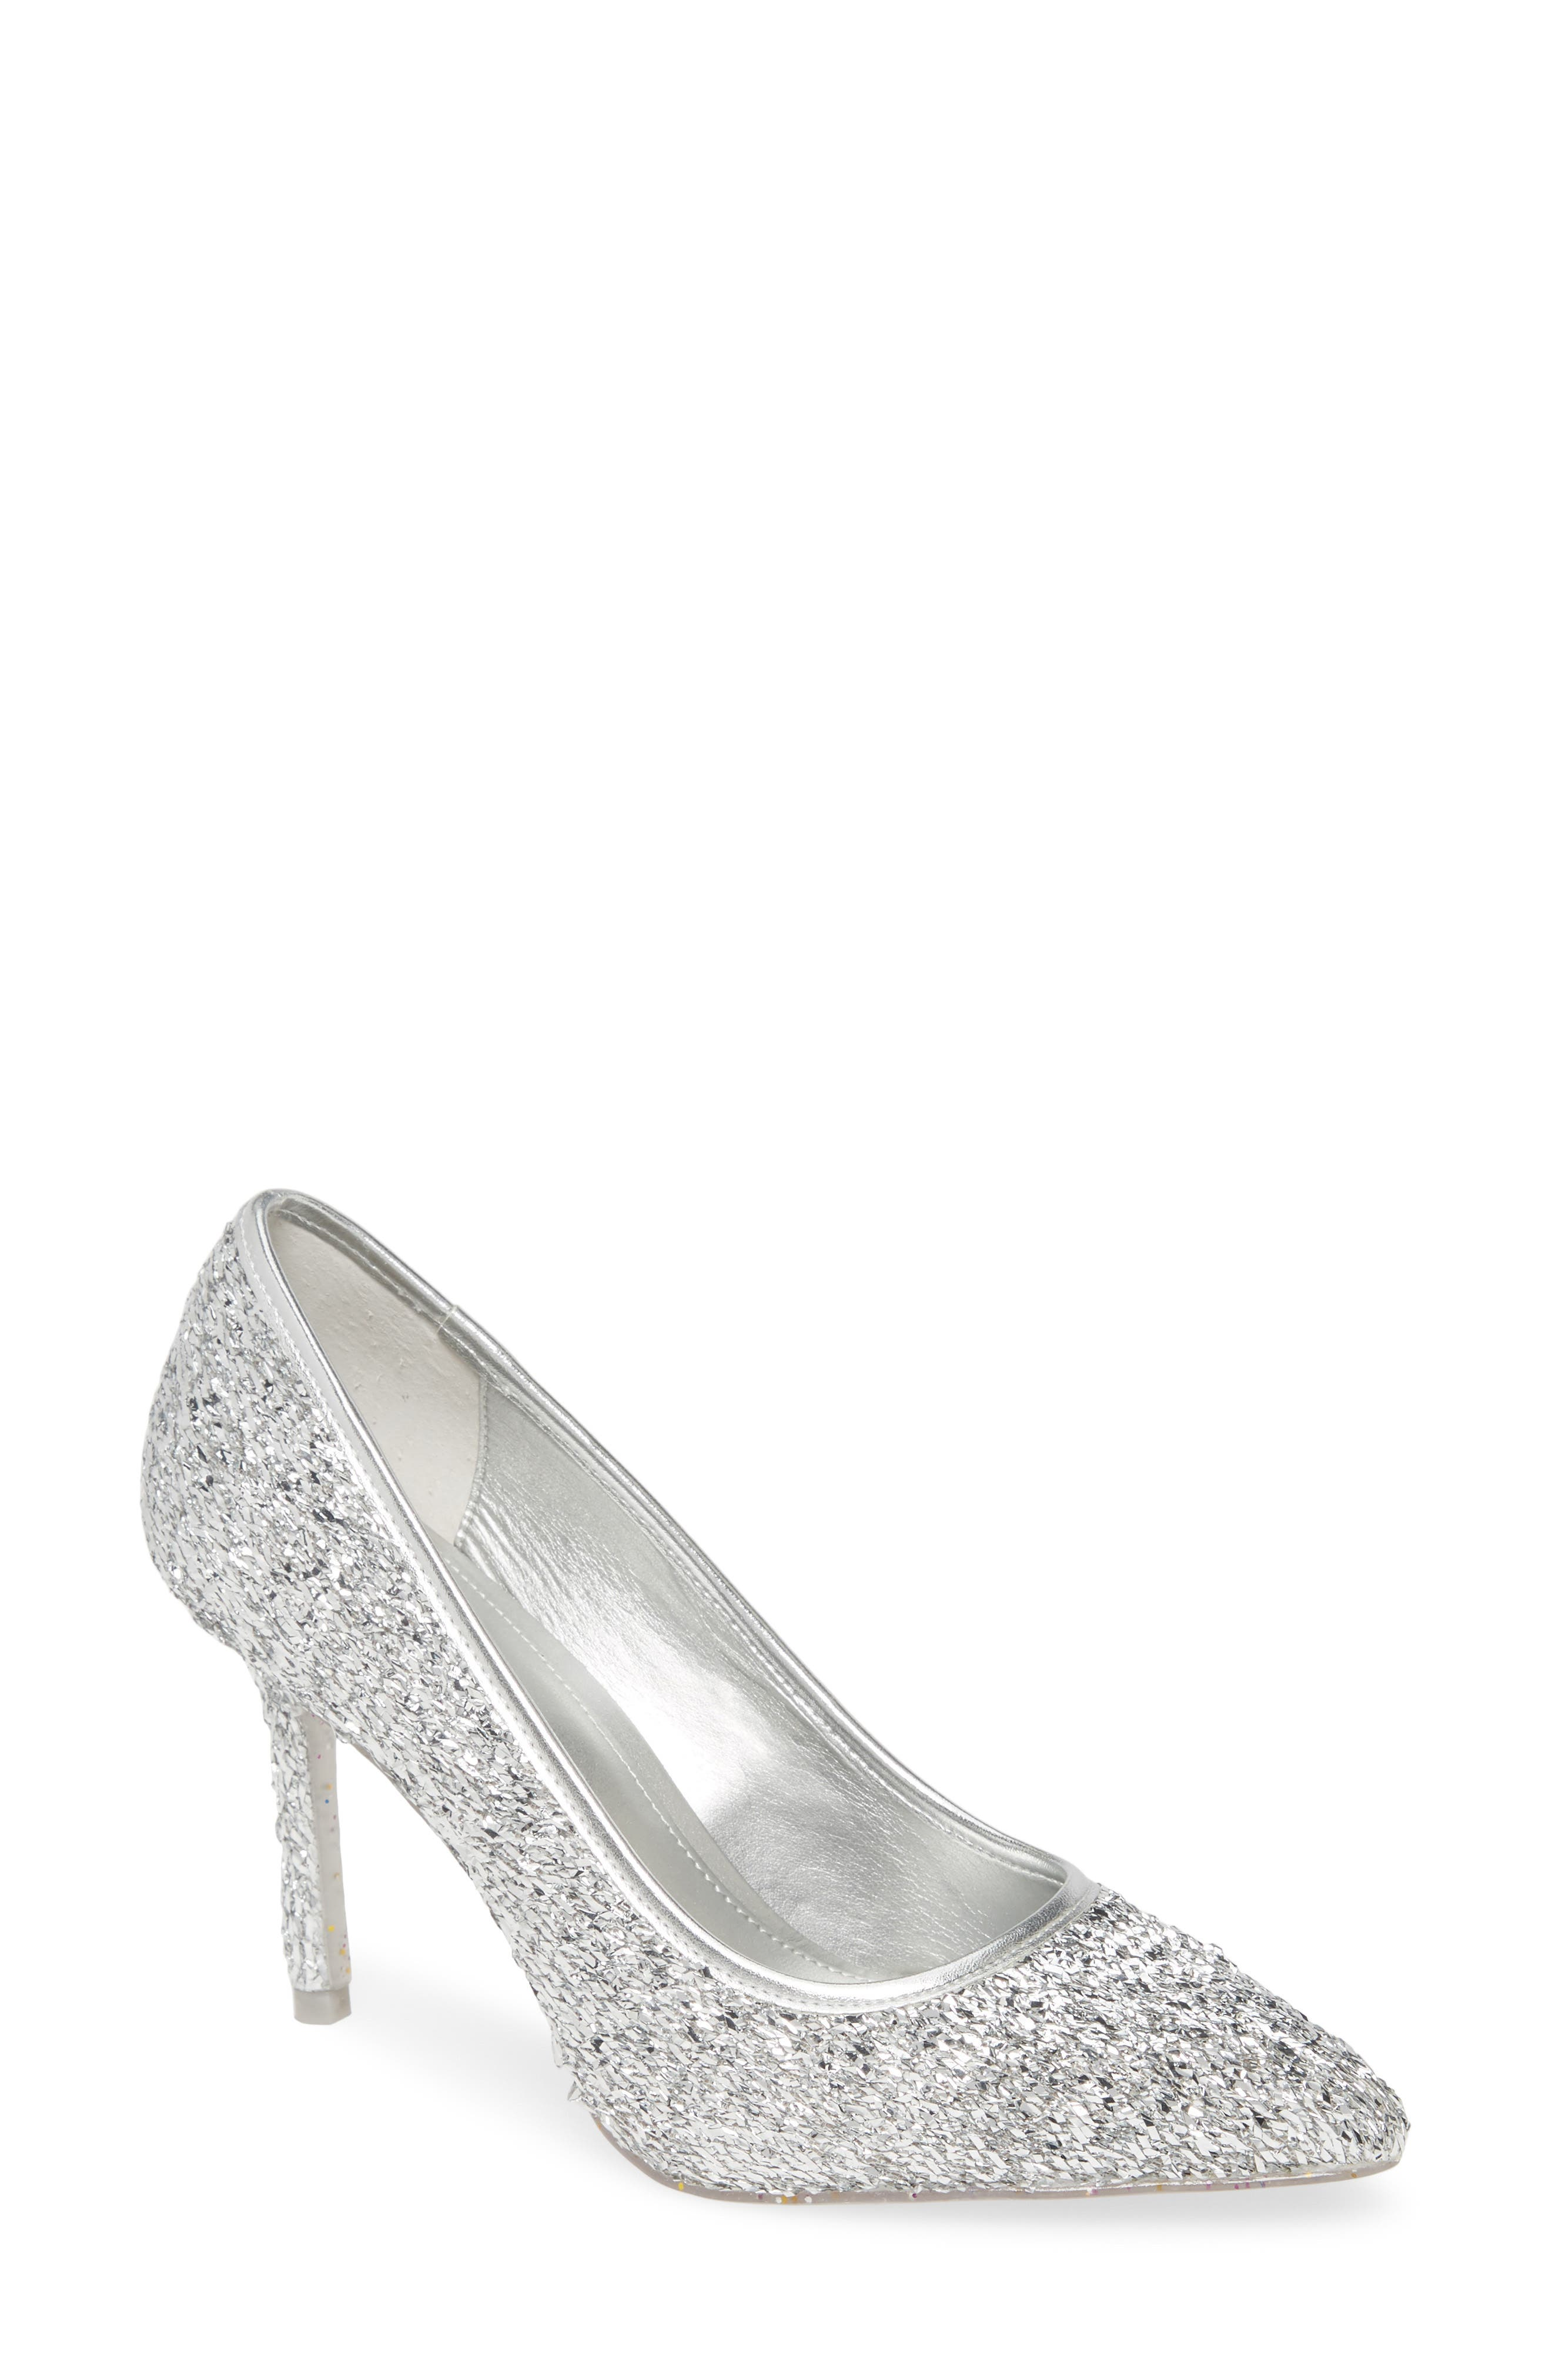 Women's Katy Perry Shoes | Nordstrom